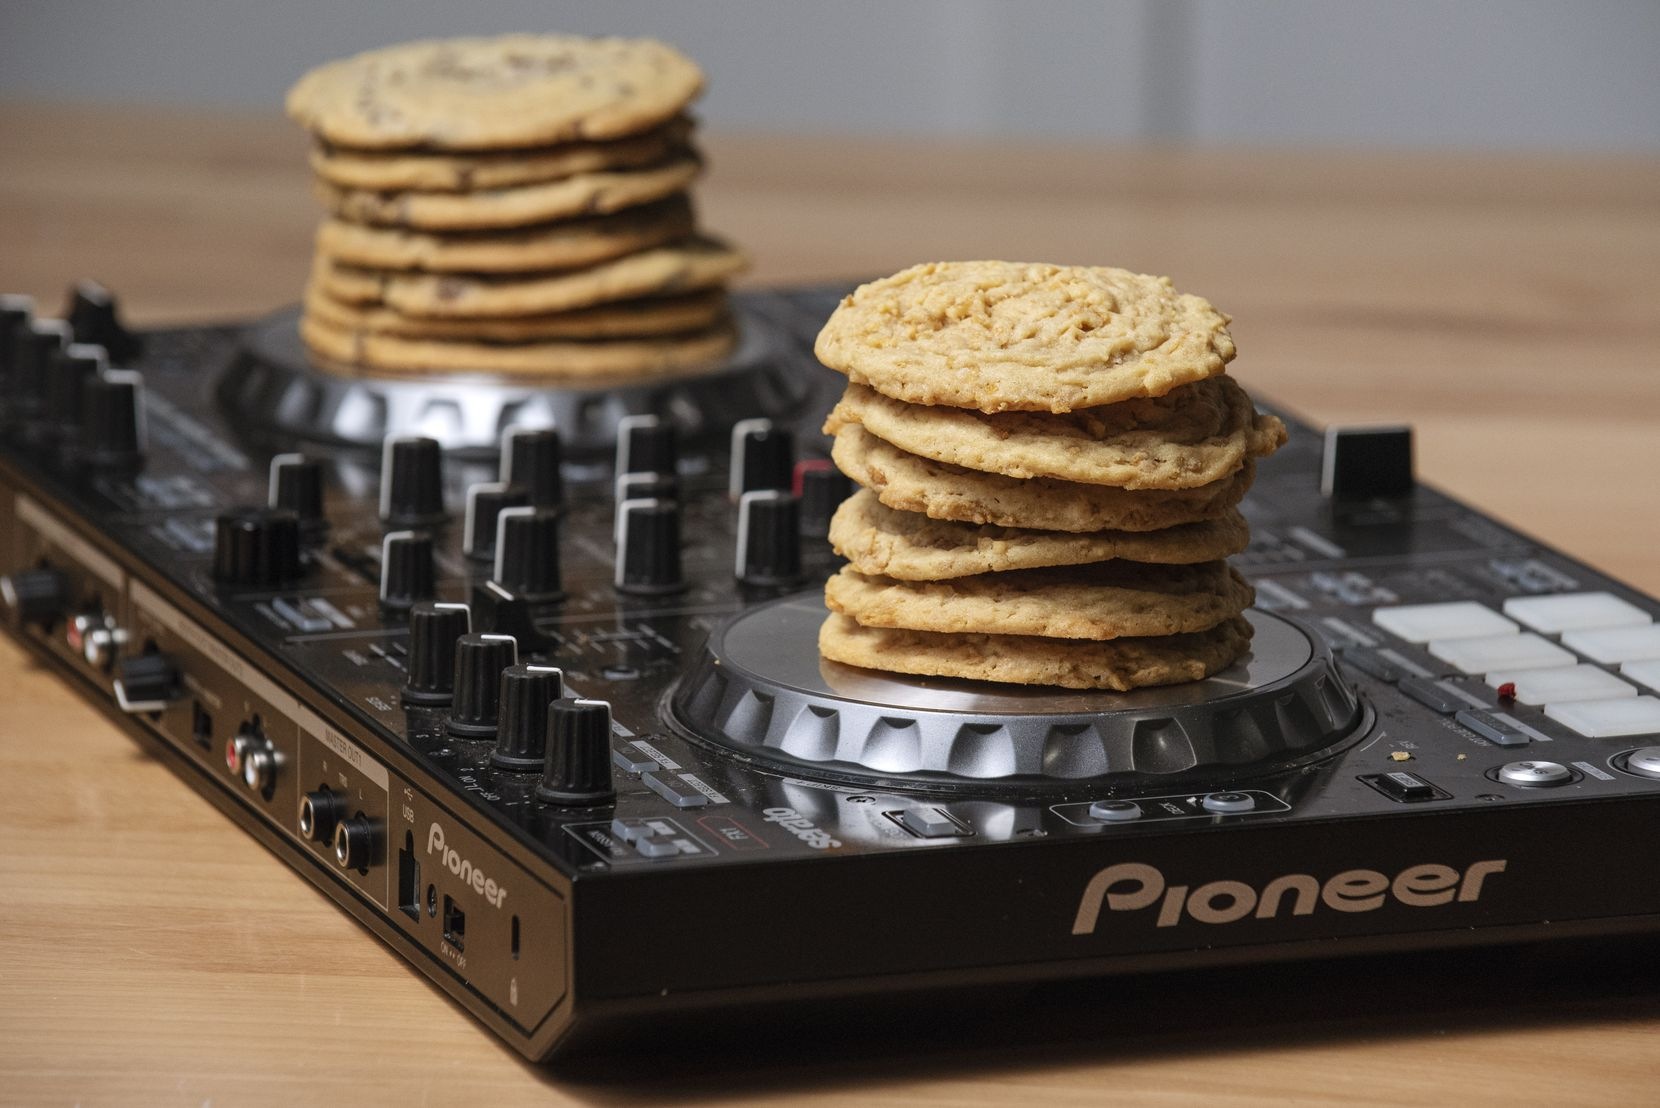 Stacks of Frosted Flake, right, and chocolate chip cookies on the electronic turntables of DJ Ursa Minor, photographed at Tyler Station in Dallas, on Monday, Oct. 19, 2020.